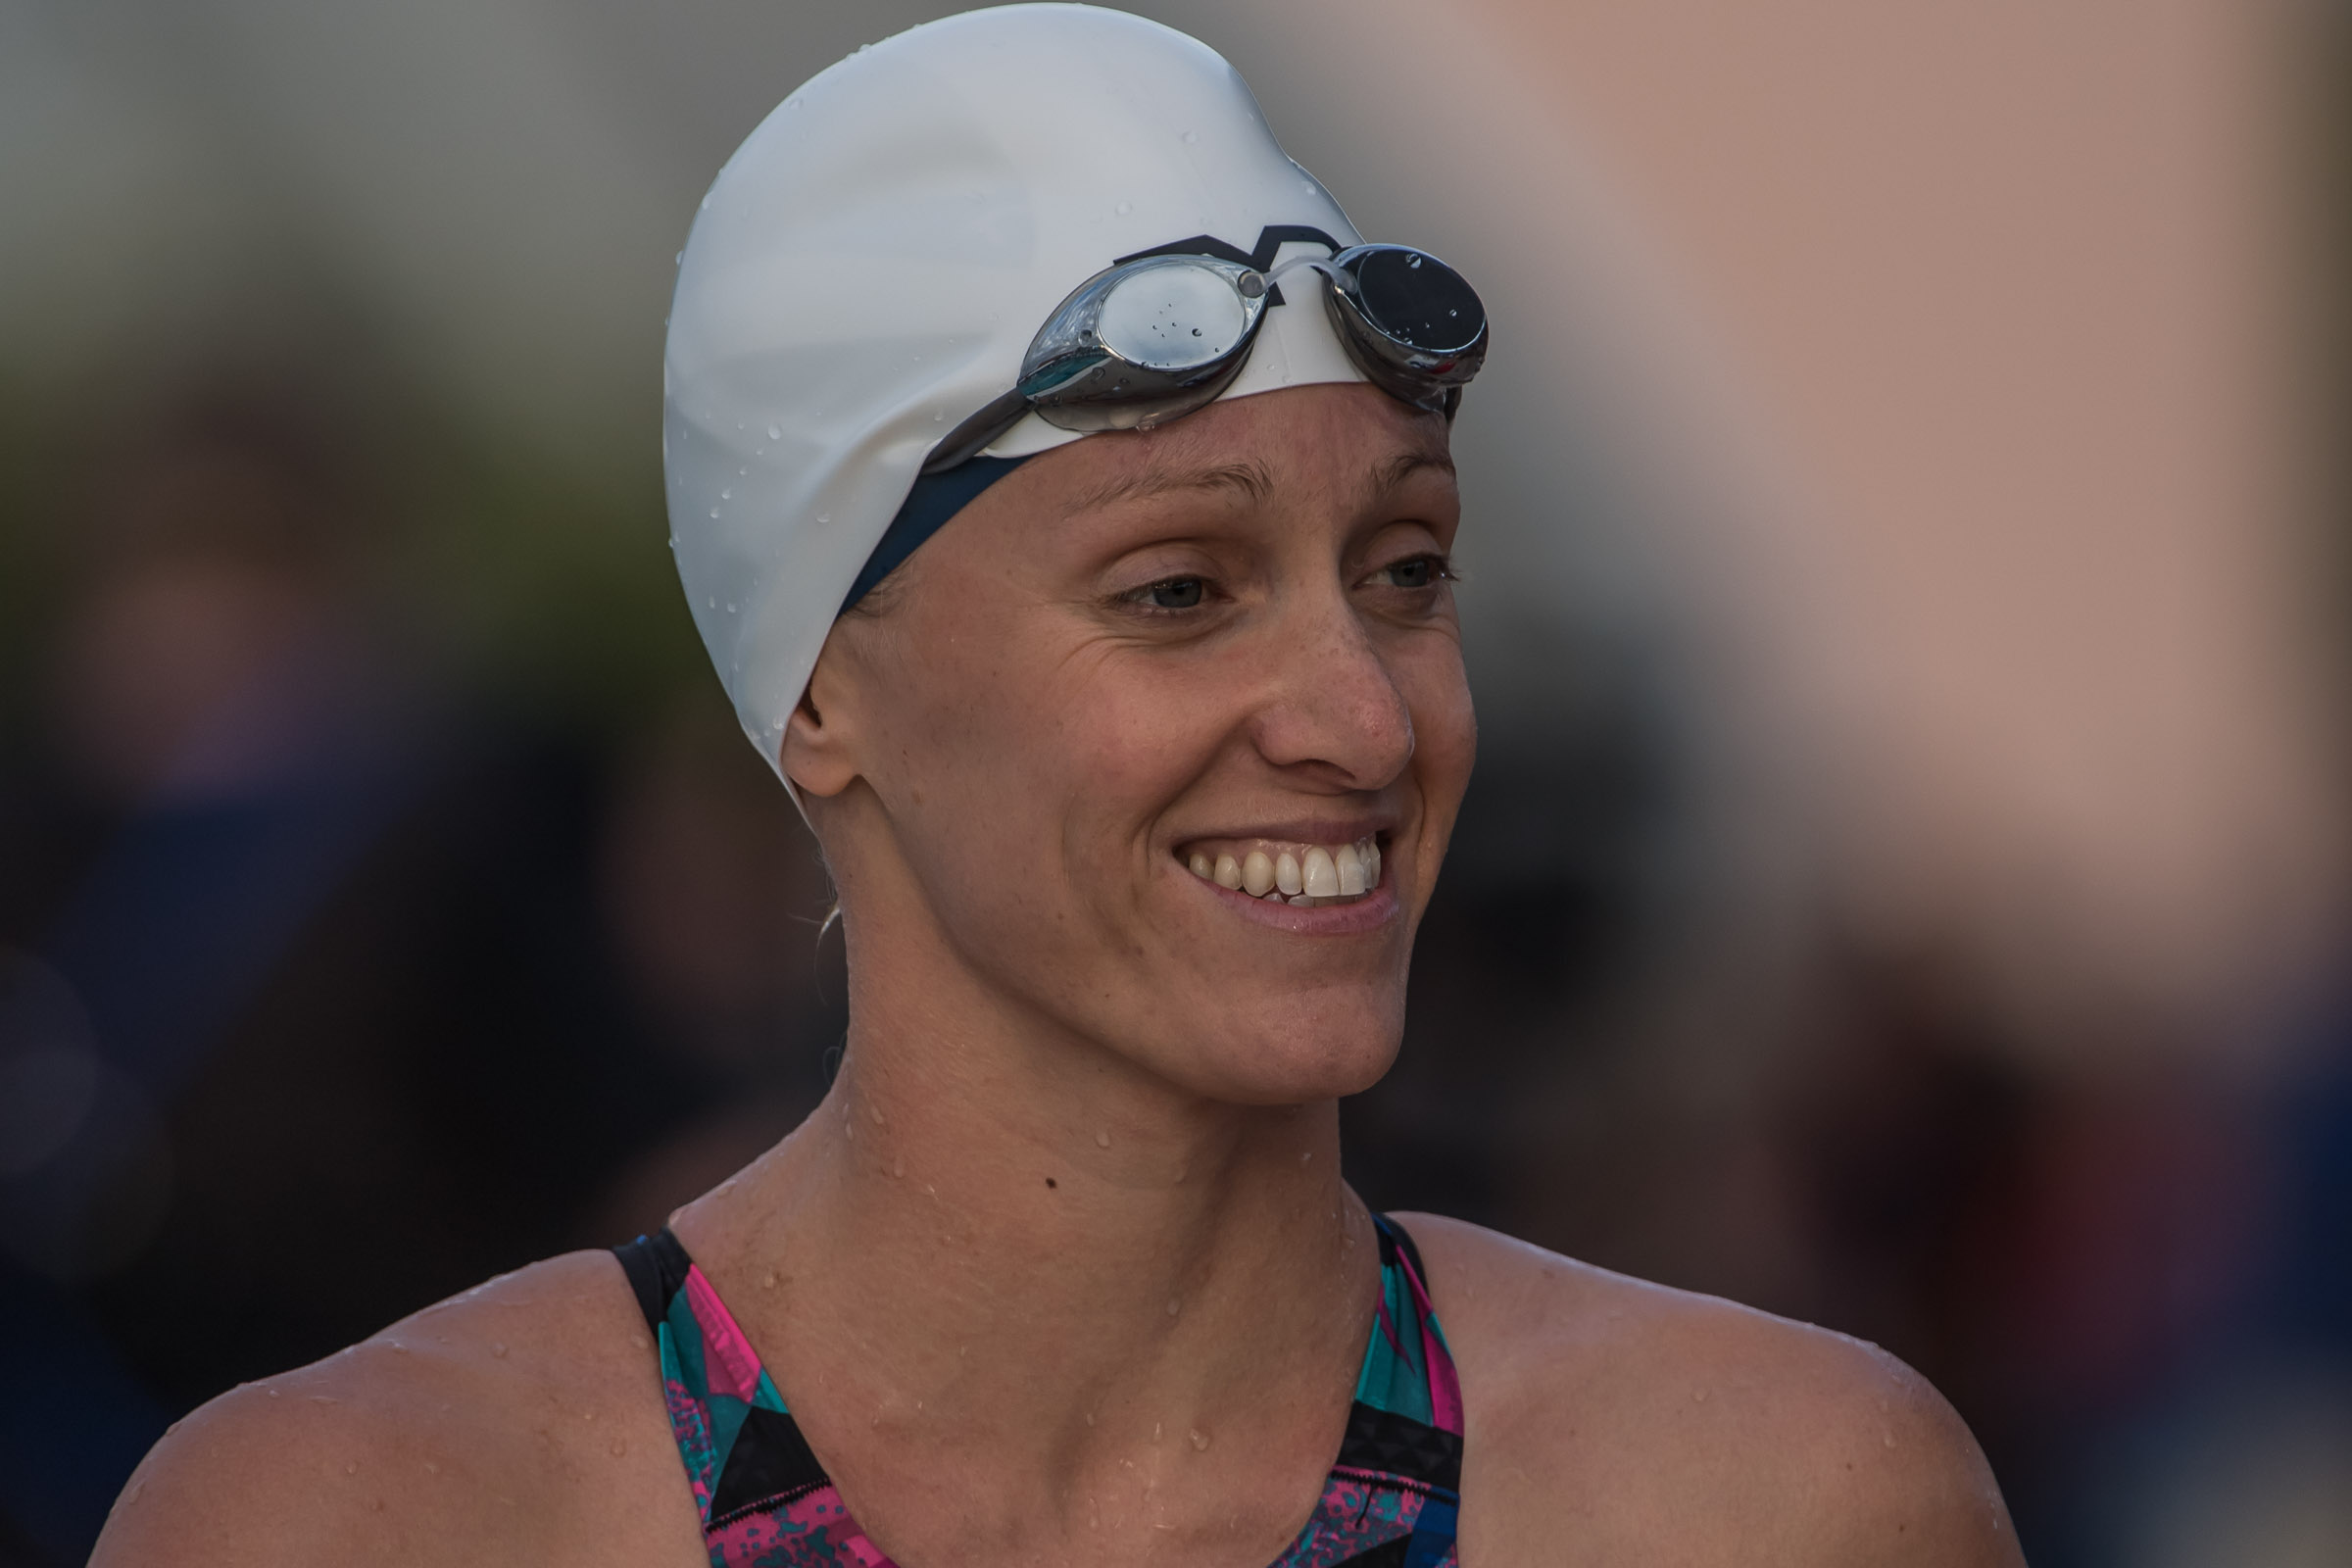 Dana Vollmer Speaks About New Perspective in Her Fifth